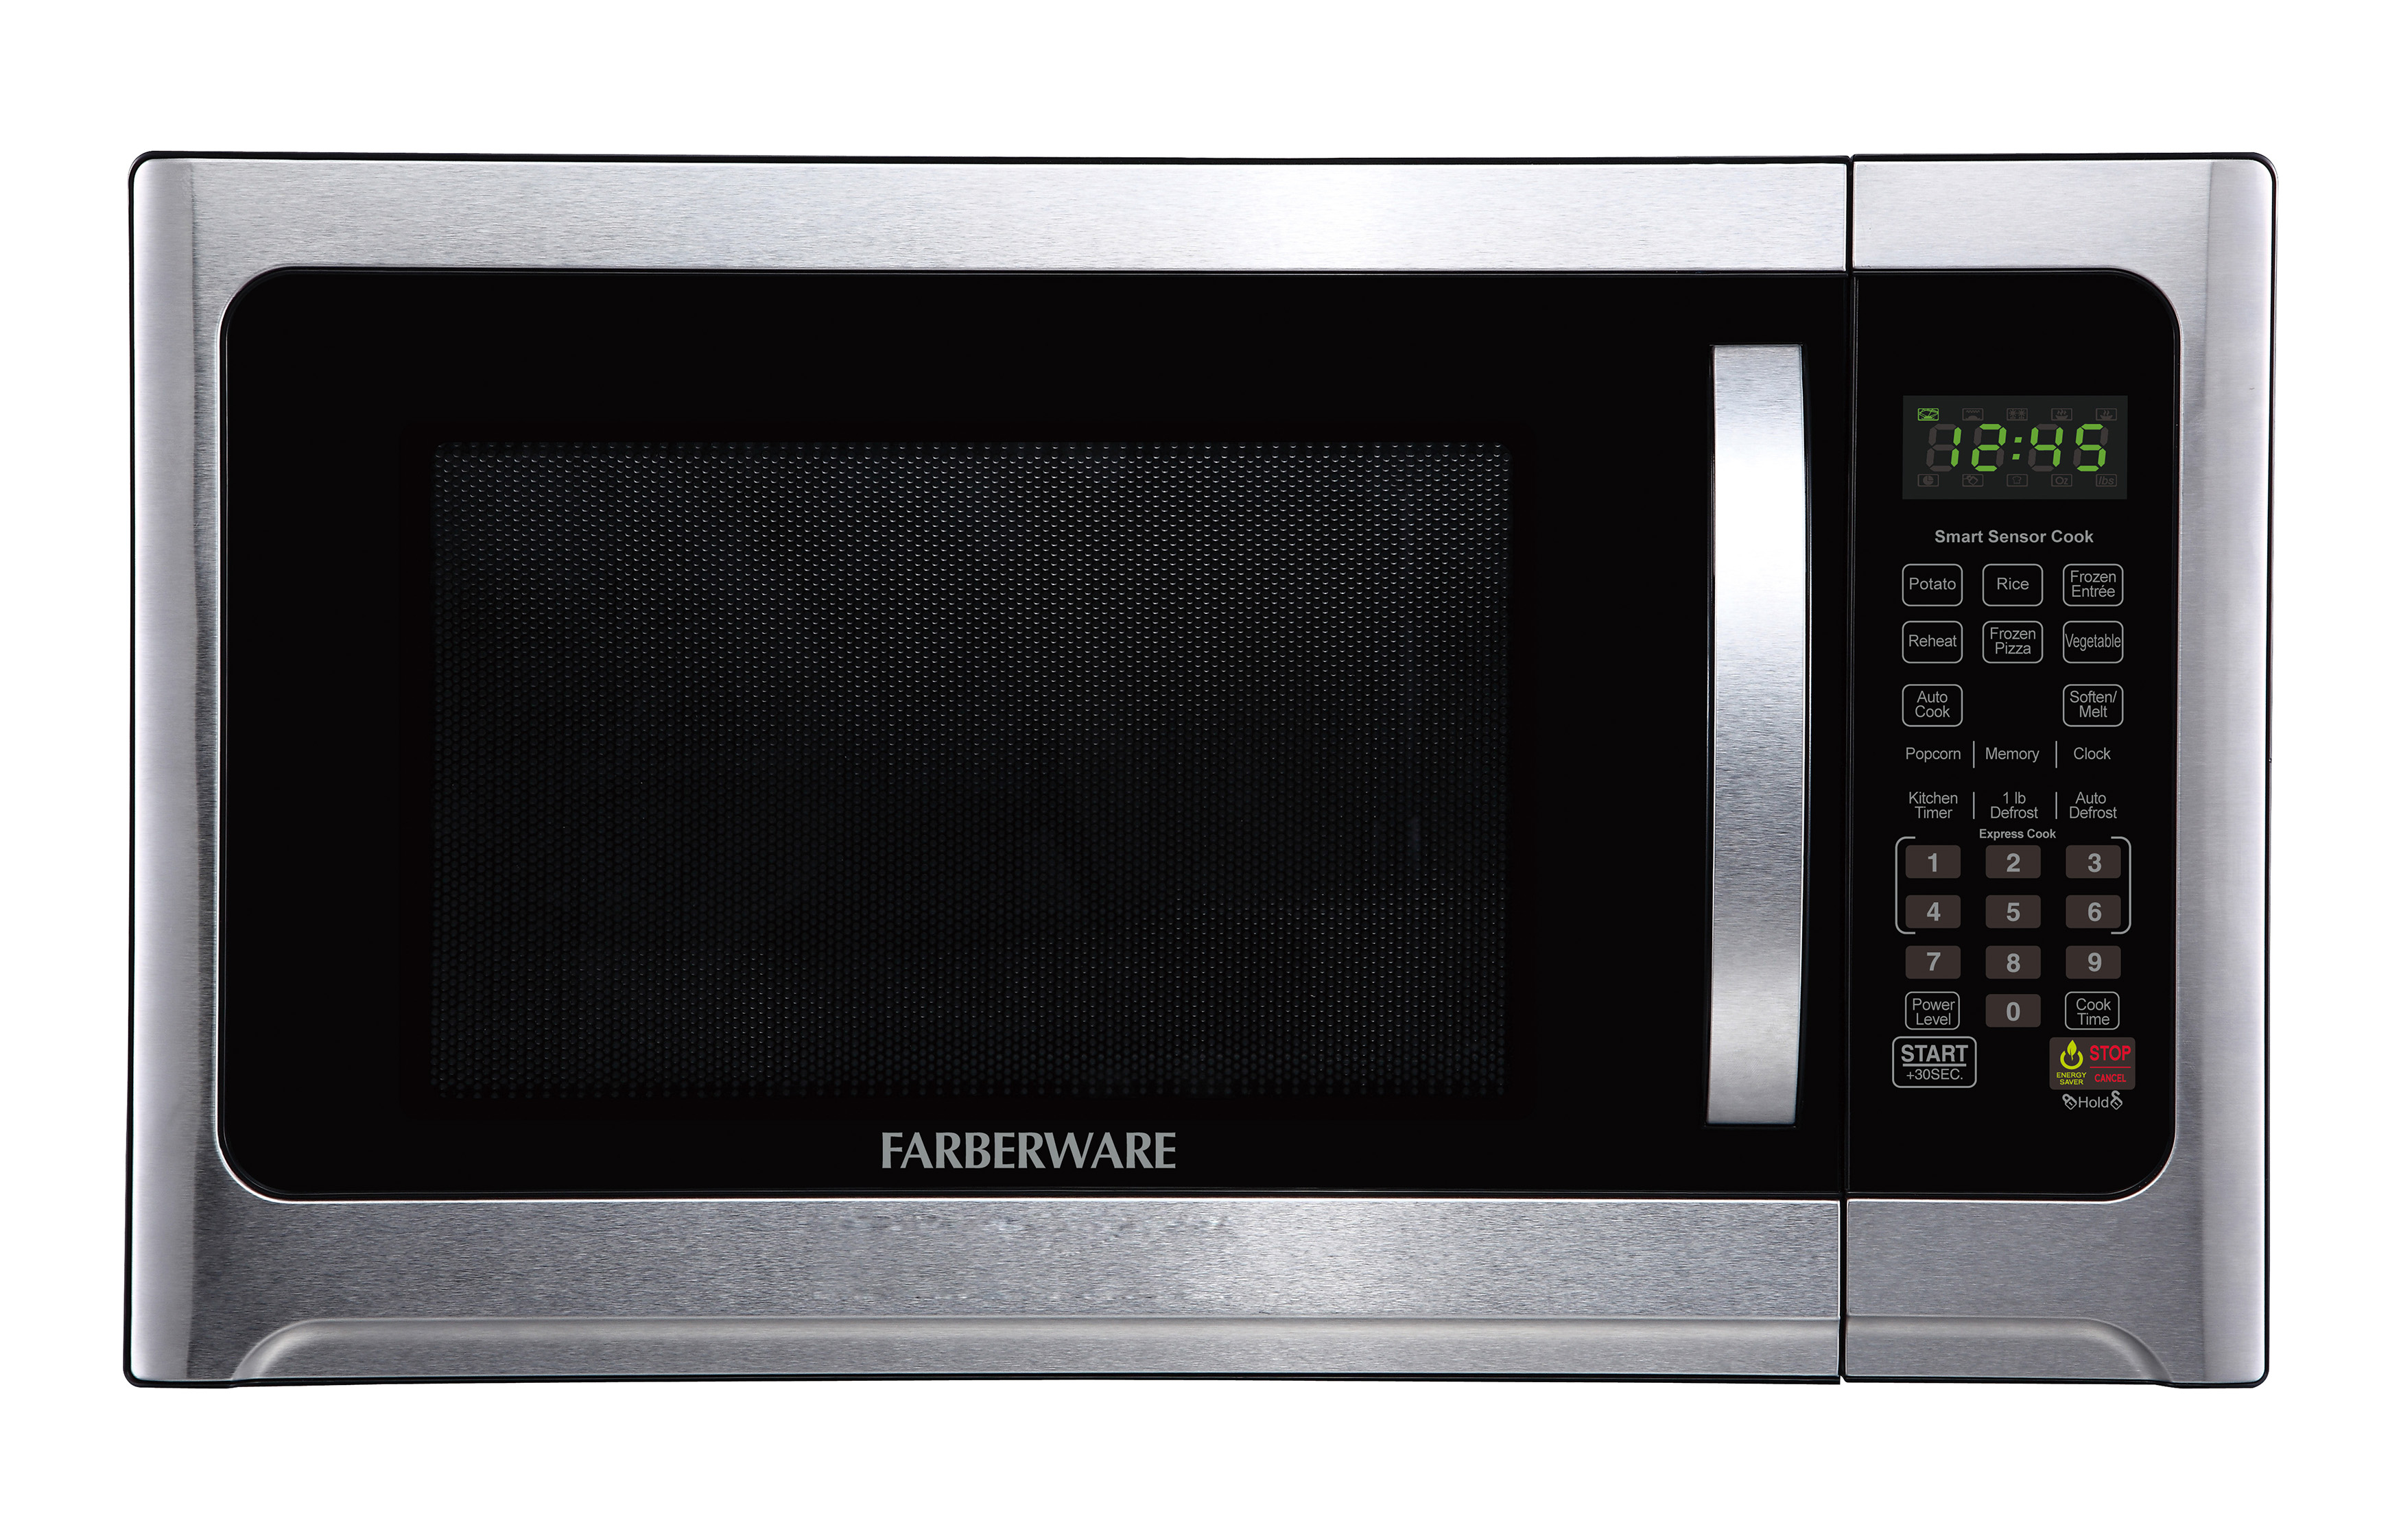 Farberware Pro�FMO12AHTBKE� 1.2 no grill 1100W with Sensor, Green LED